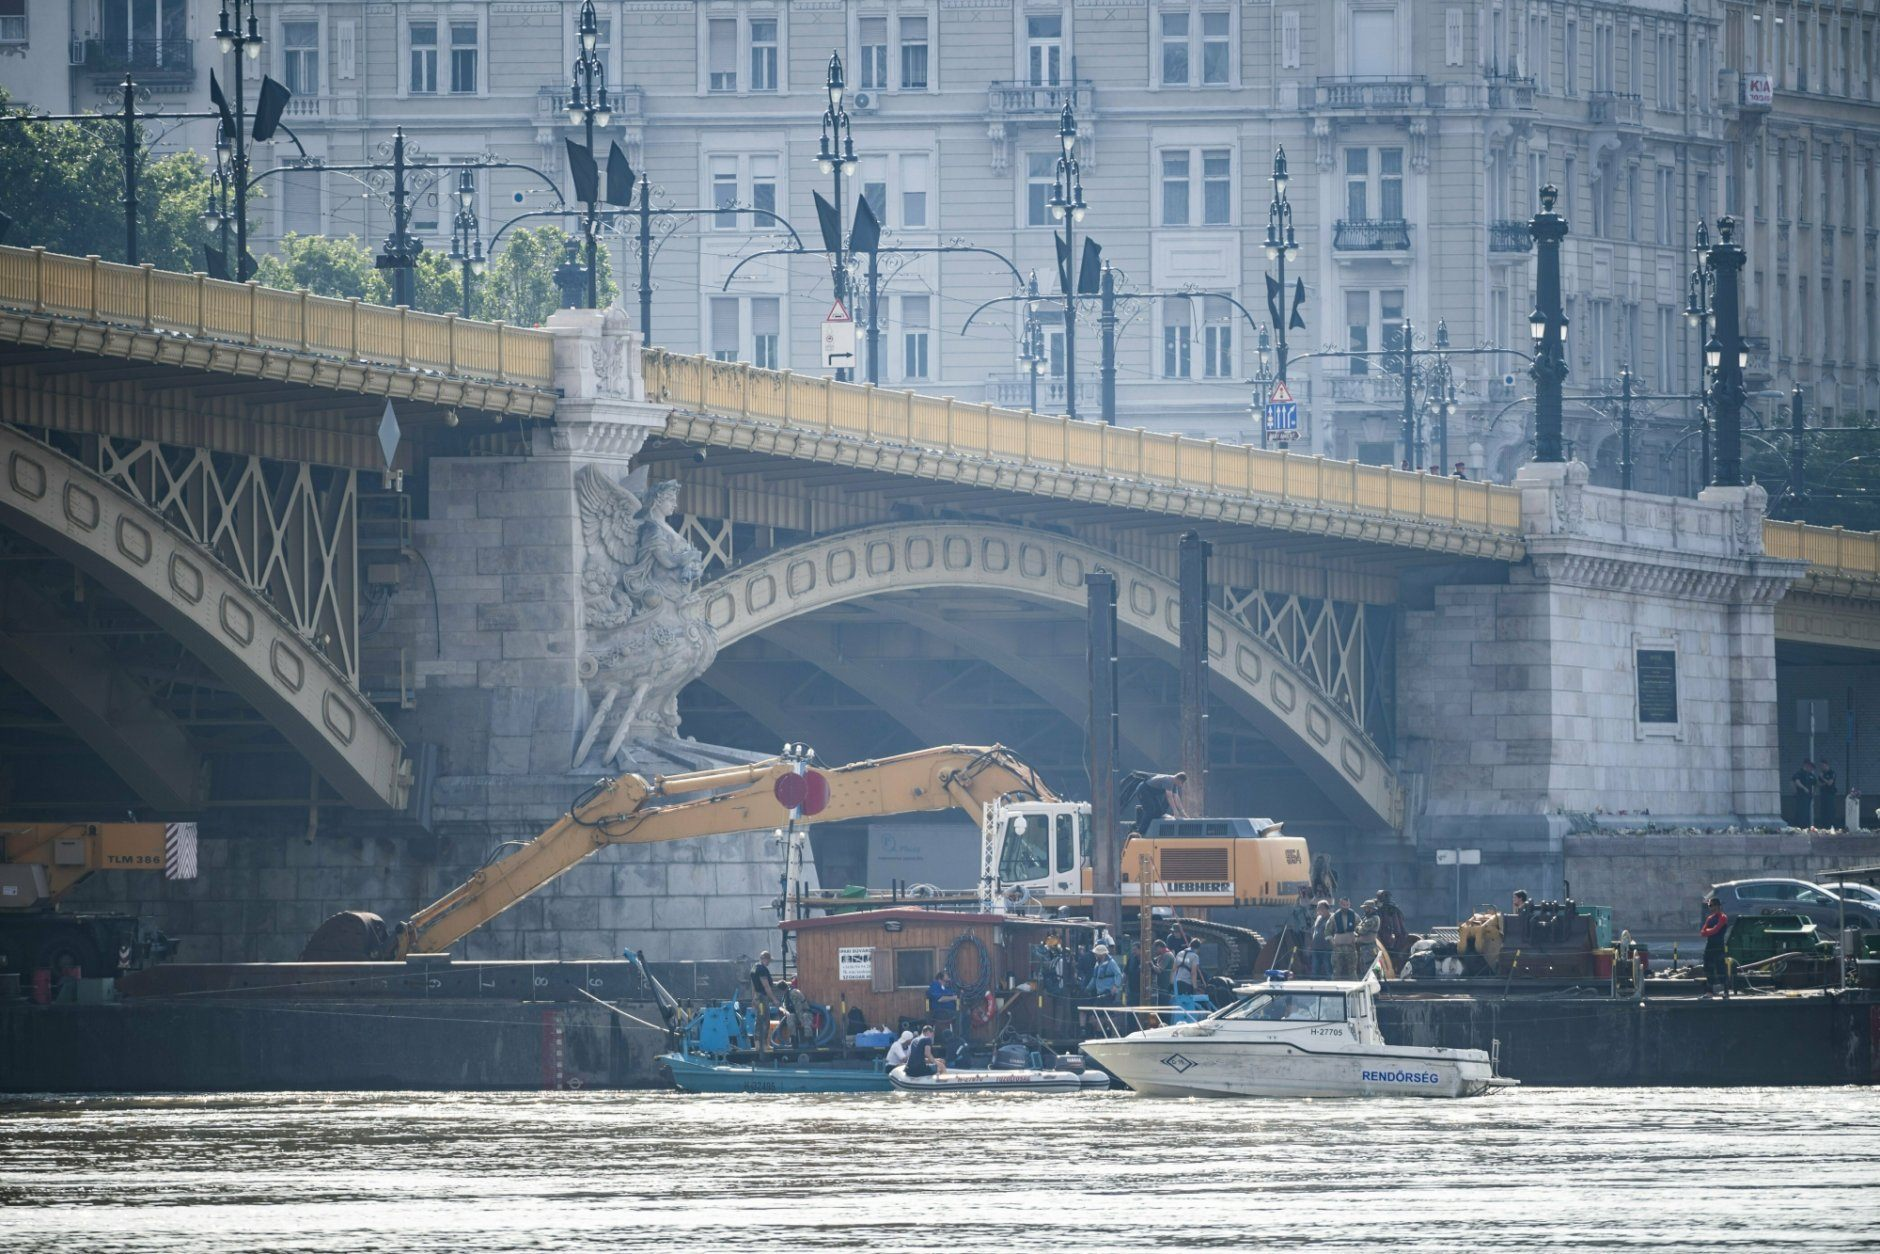 A power shovel fixed on a pontoon and members of the rescue team works in River Danube near Margaret Bridge, the scene of a boat accident, in Budapest, Hungary, Friday, June 7, 2019. A sightseeing boat carrying 33 South Korean tourists was crashed by a large river cruise ship and sank in River Danube at a pier of Margaret Bridge on May 29, killing at least nineteen tourists. Seven tourists were injured, 9 persons went missing. (Marton Monus/MTI via AP)